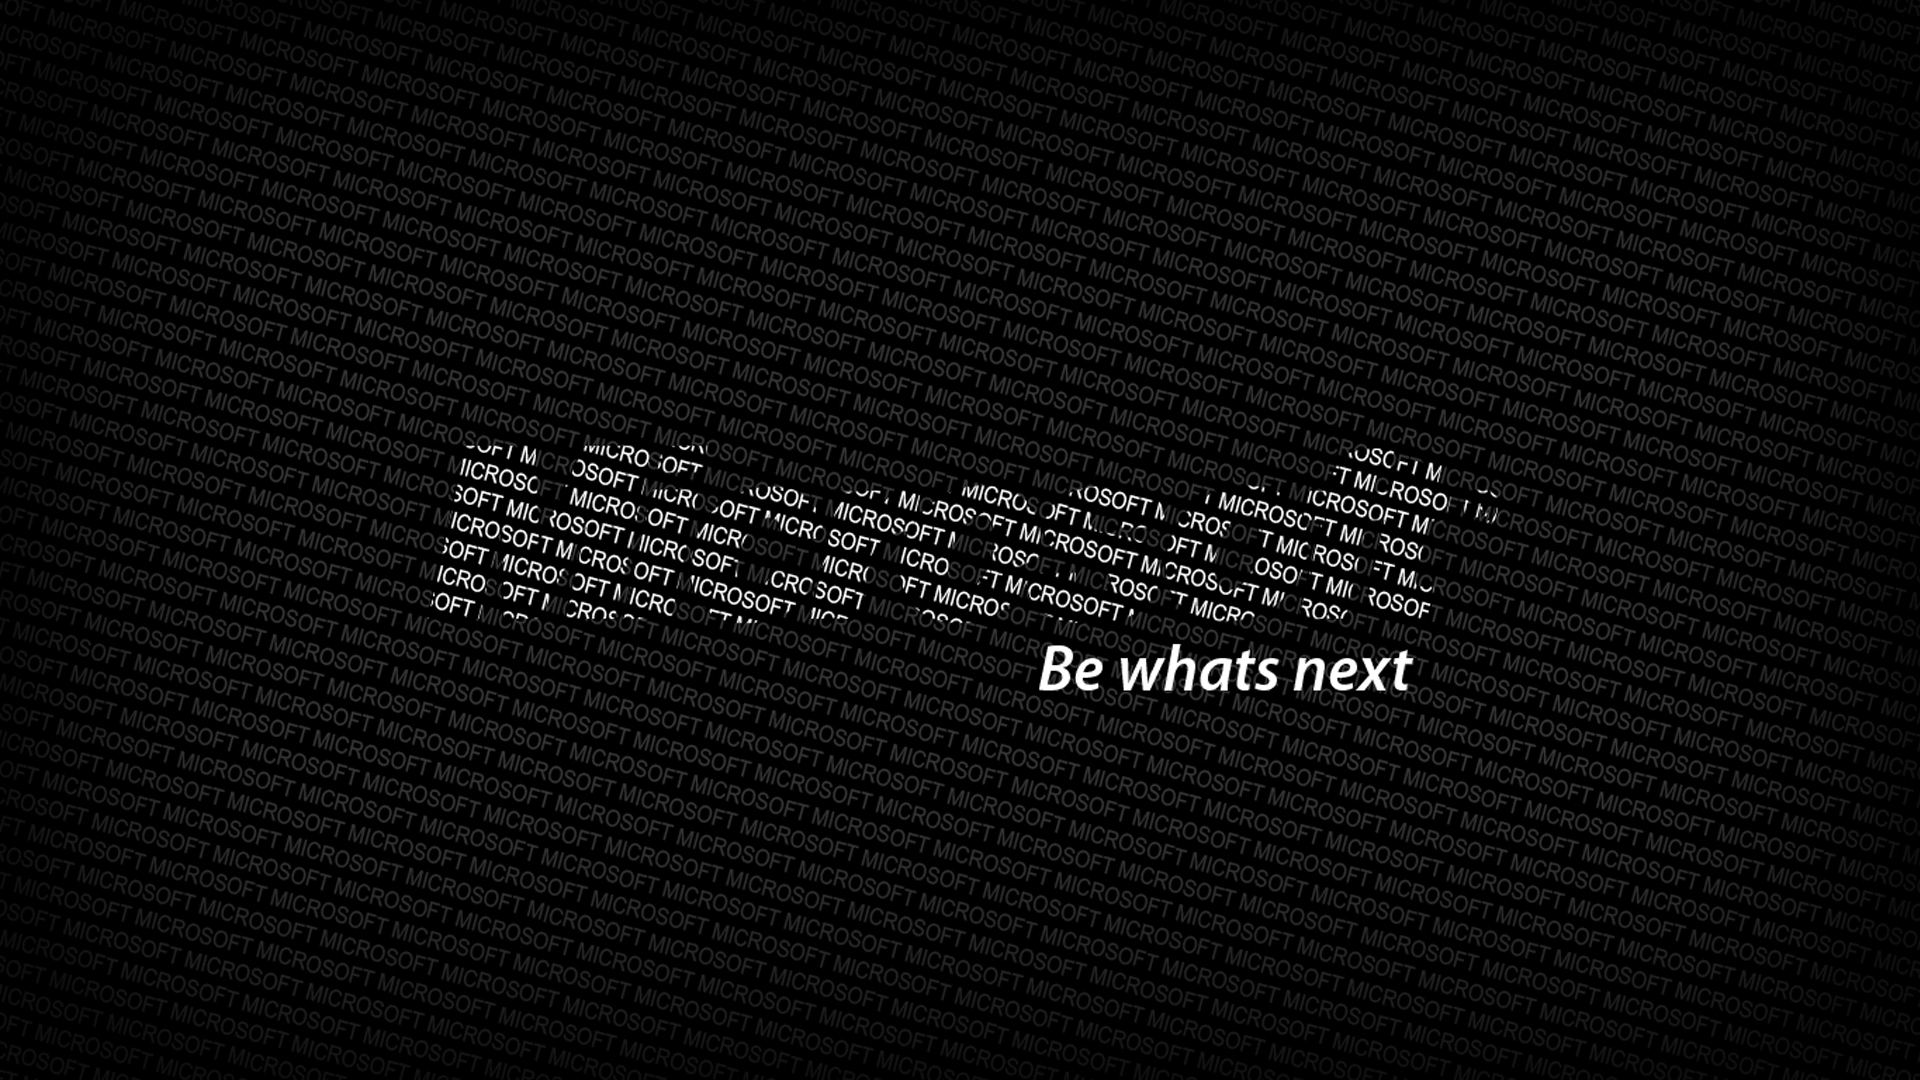 Download Wallpaper 1920x1080 microsoft, logo, text, words, be whats